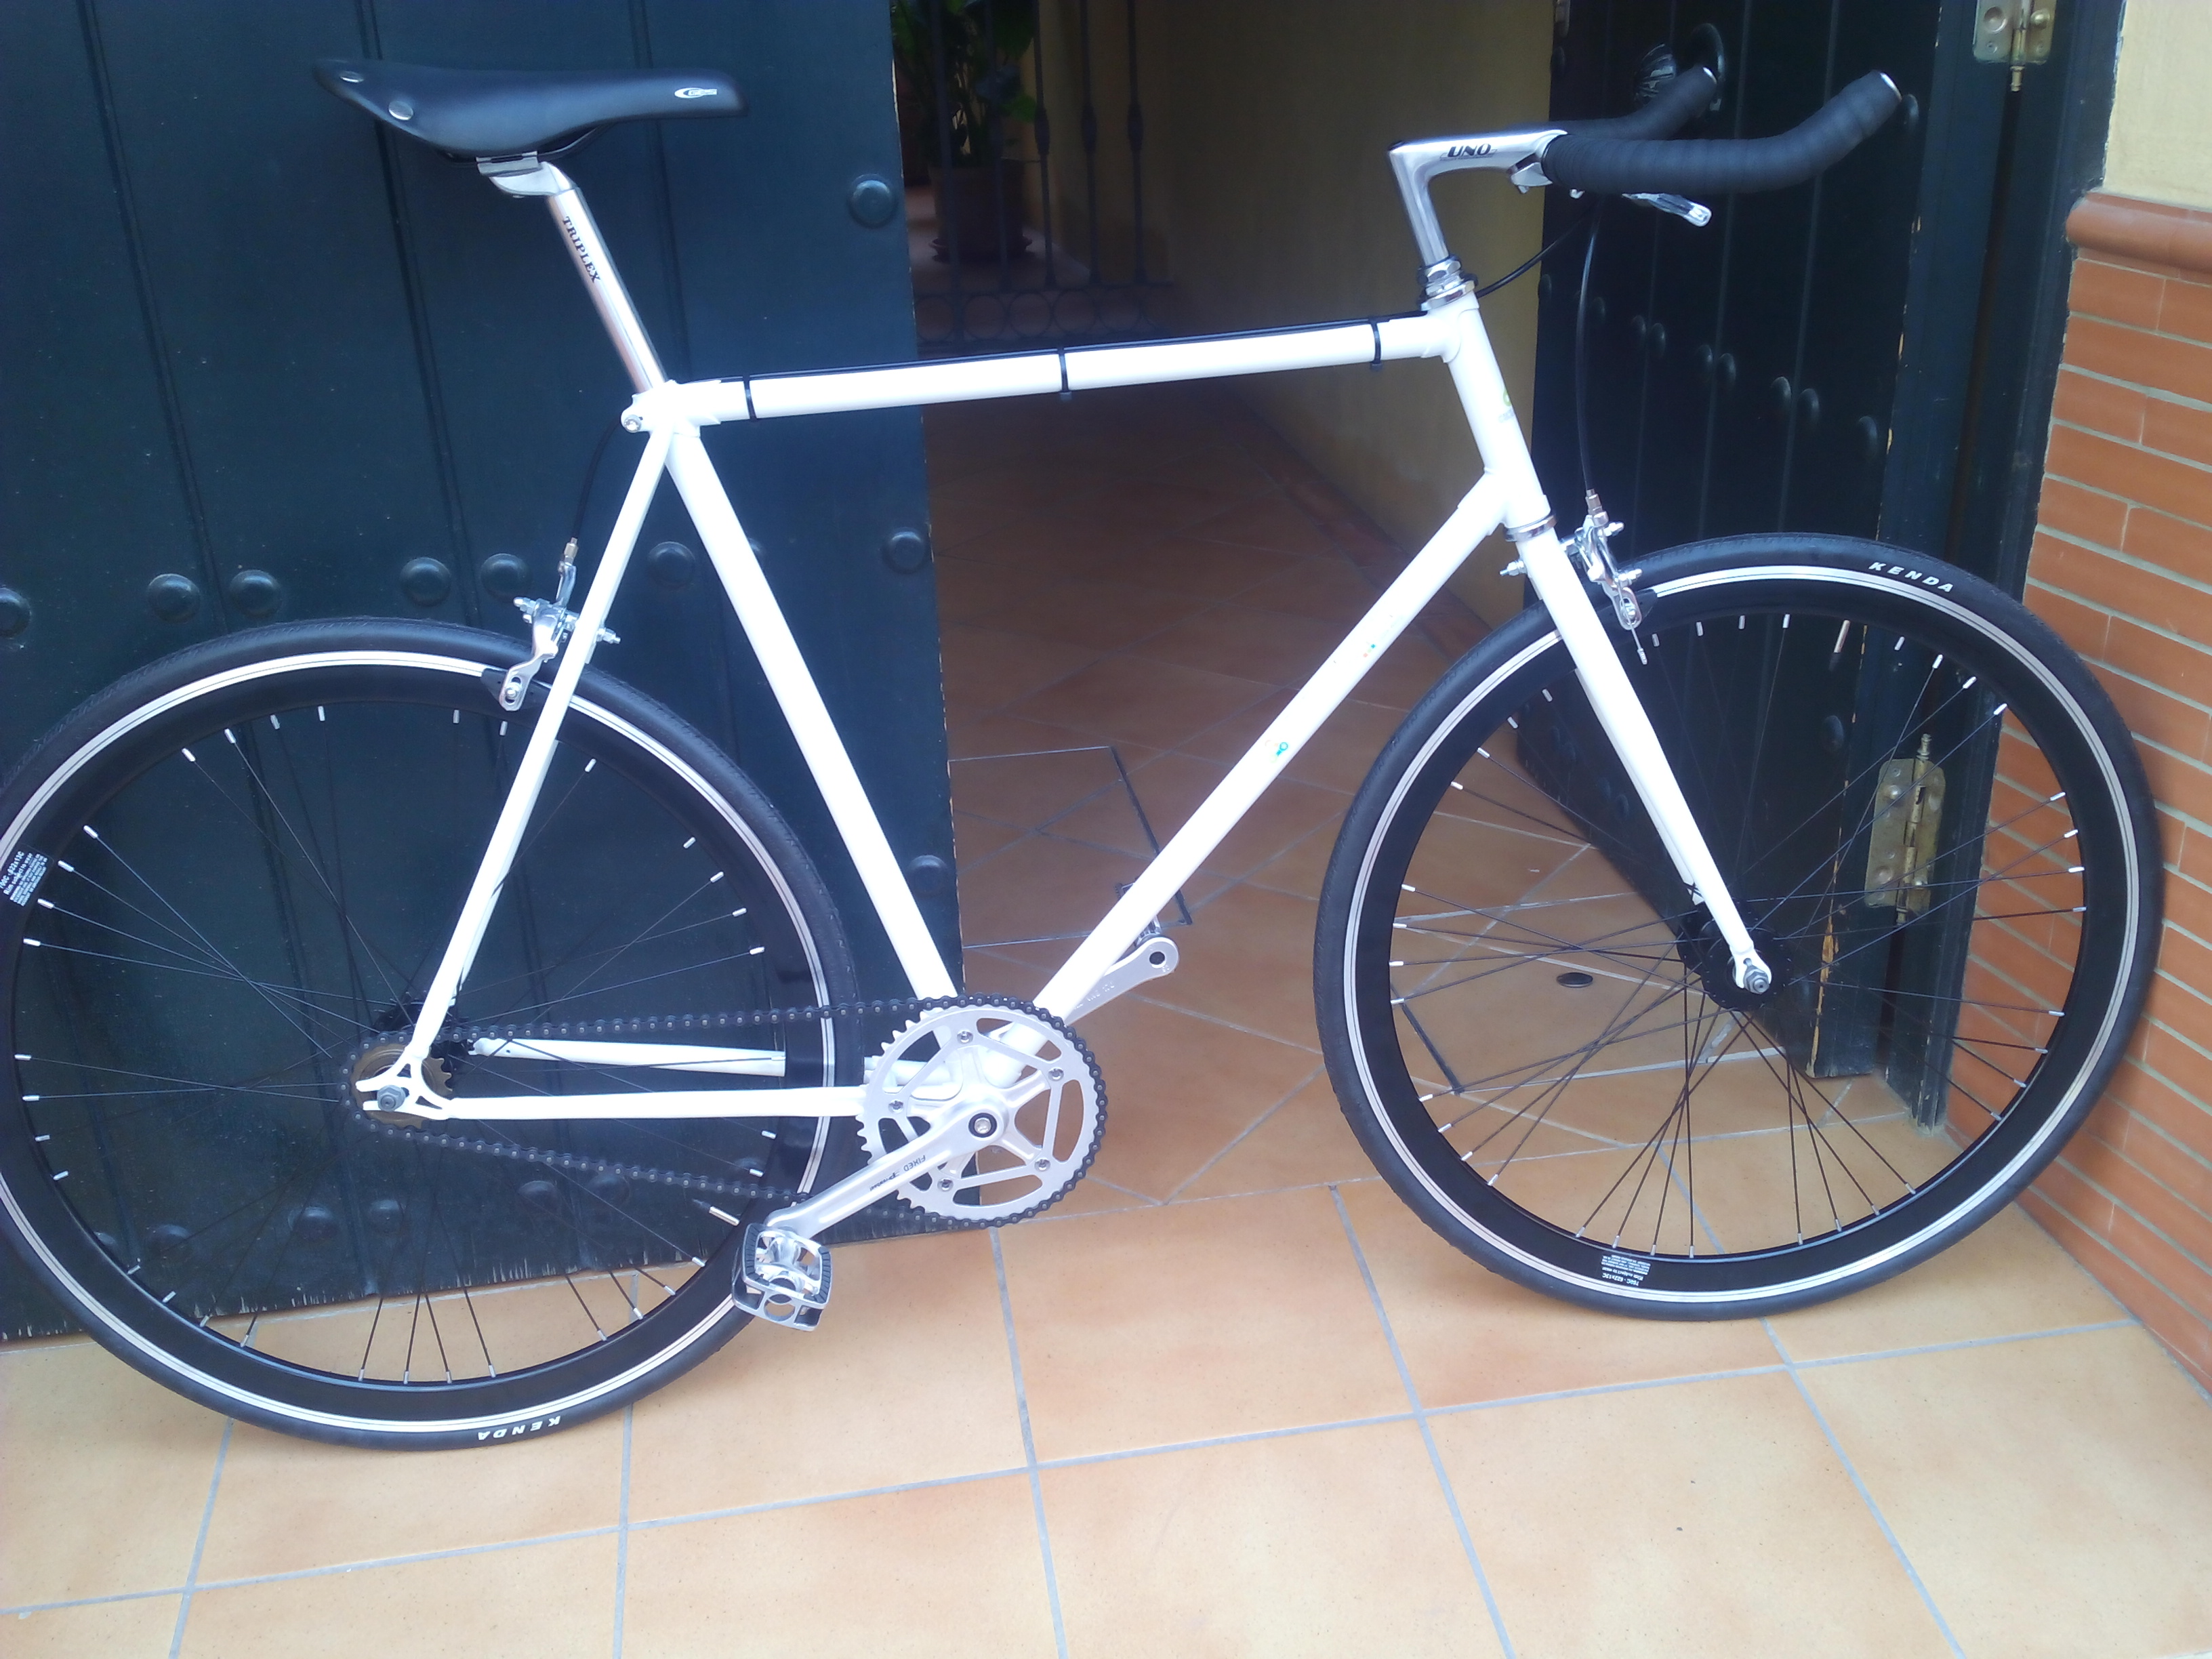 Encargo Single Speed blanca y negra